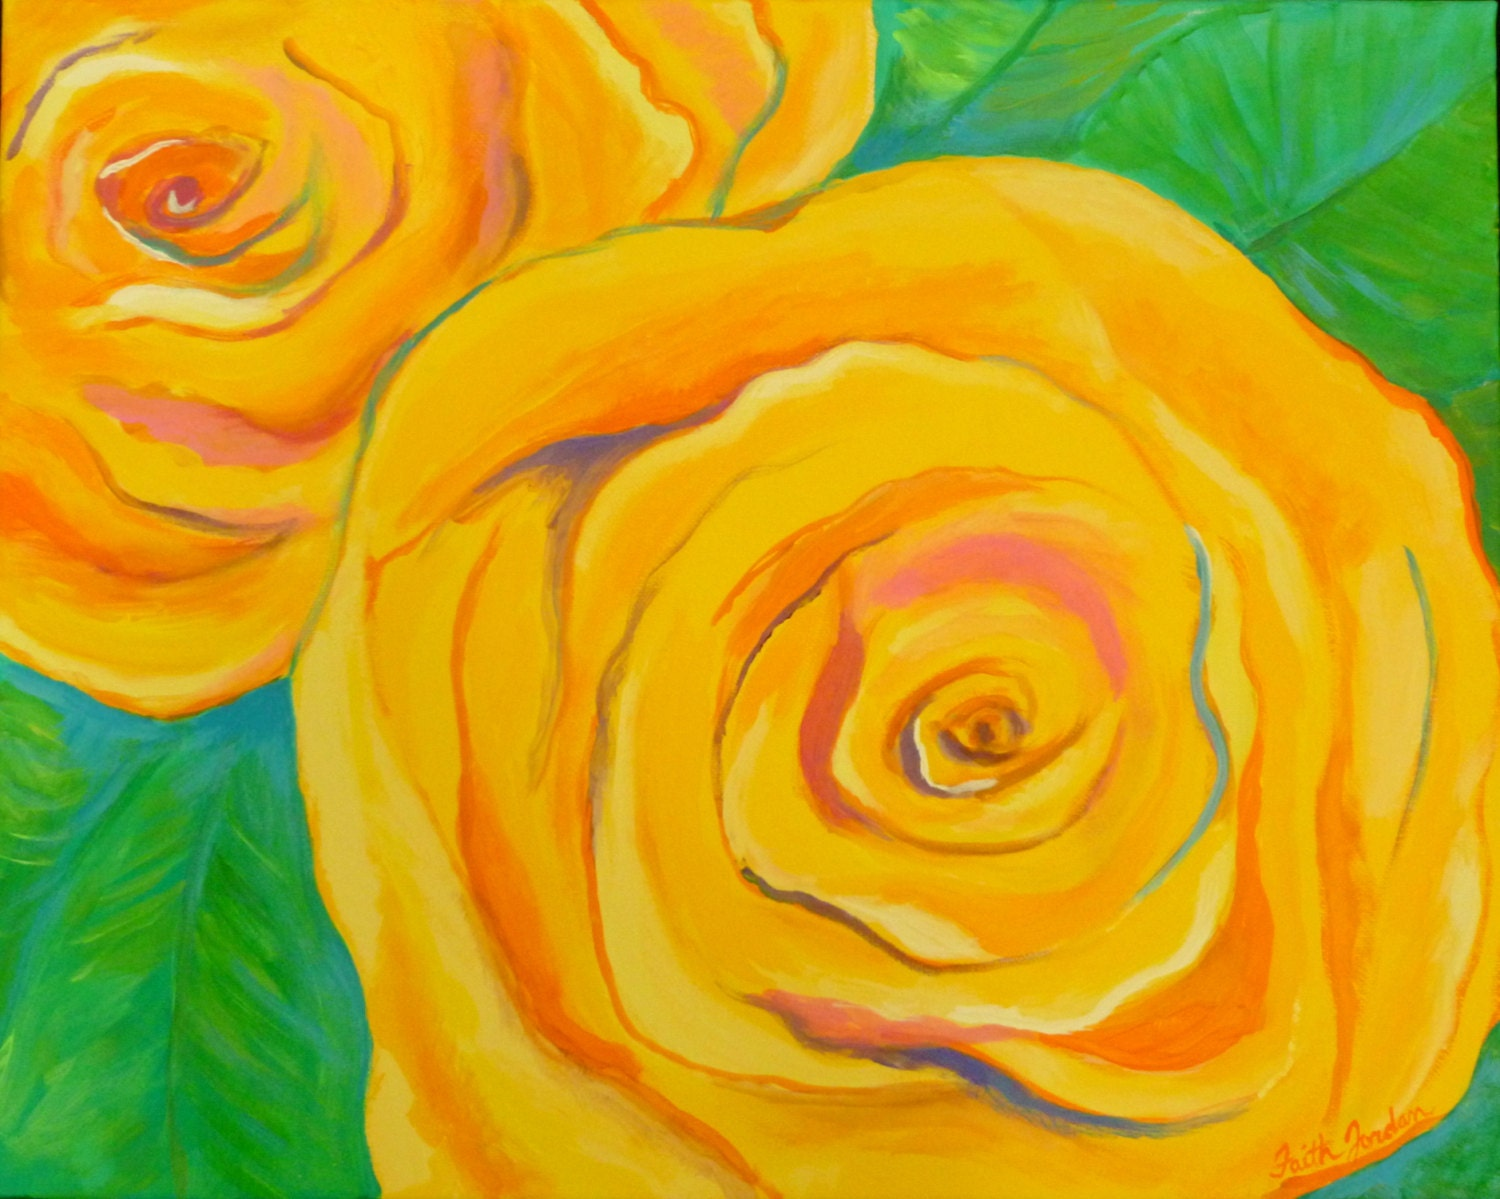 Bright Yellow Roses-abstract art-large rose painting-colorful